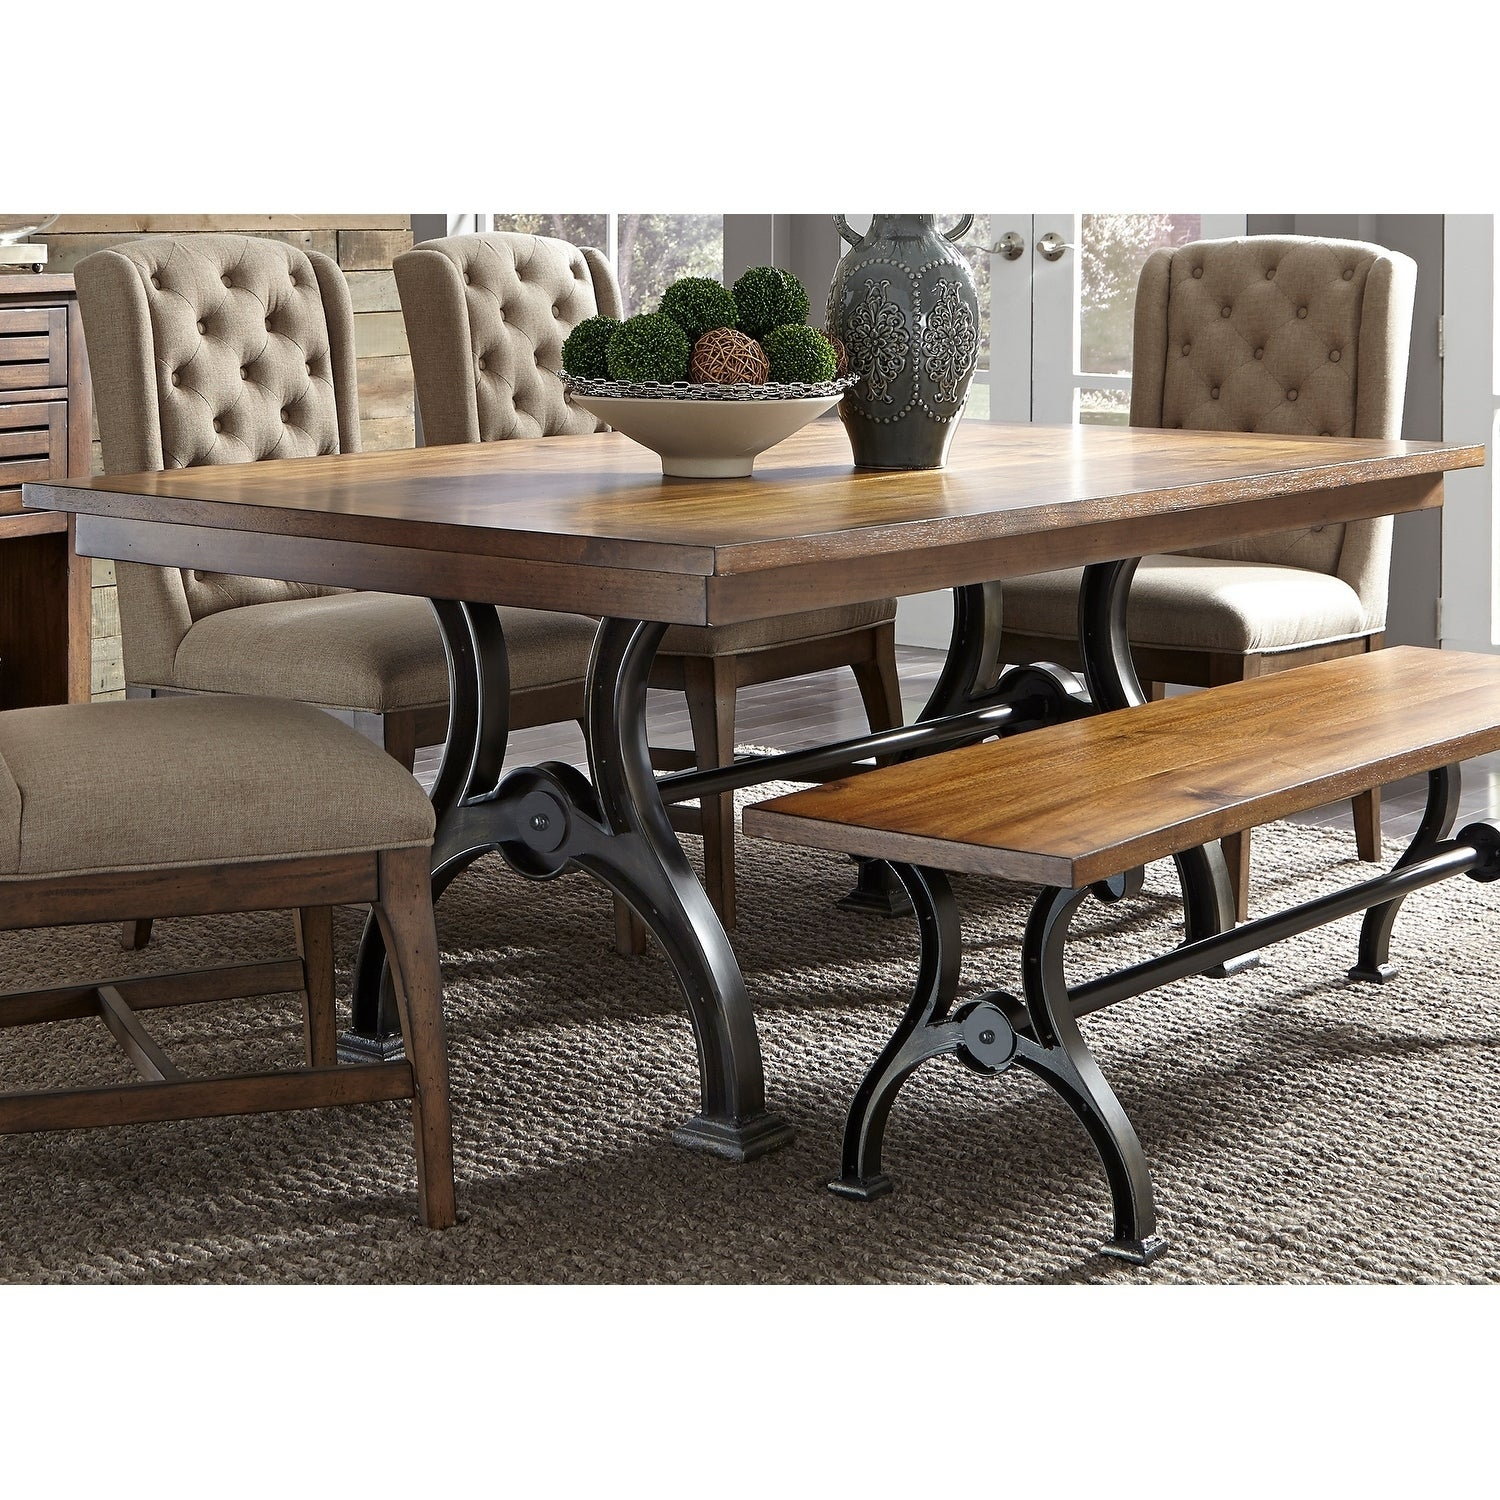 Shop Arlington House Cobblestone Brown 6 Piece Trestle Table Set With Bench    On Sale   Free Shipping Today   Overstock   18620346